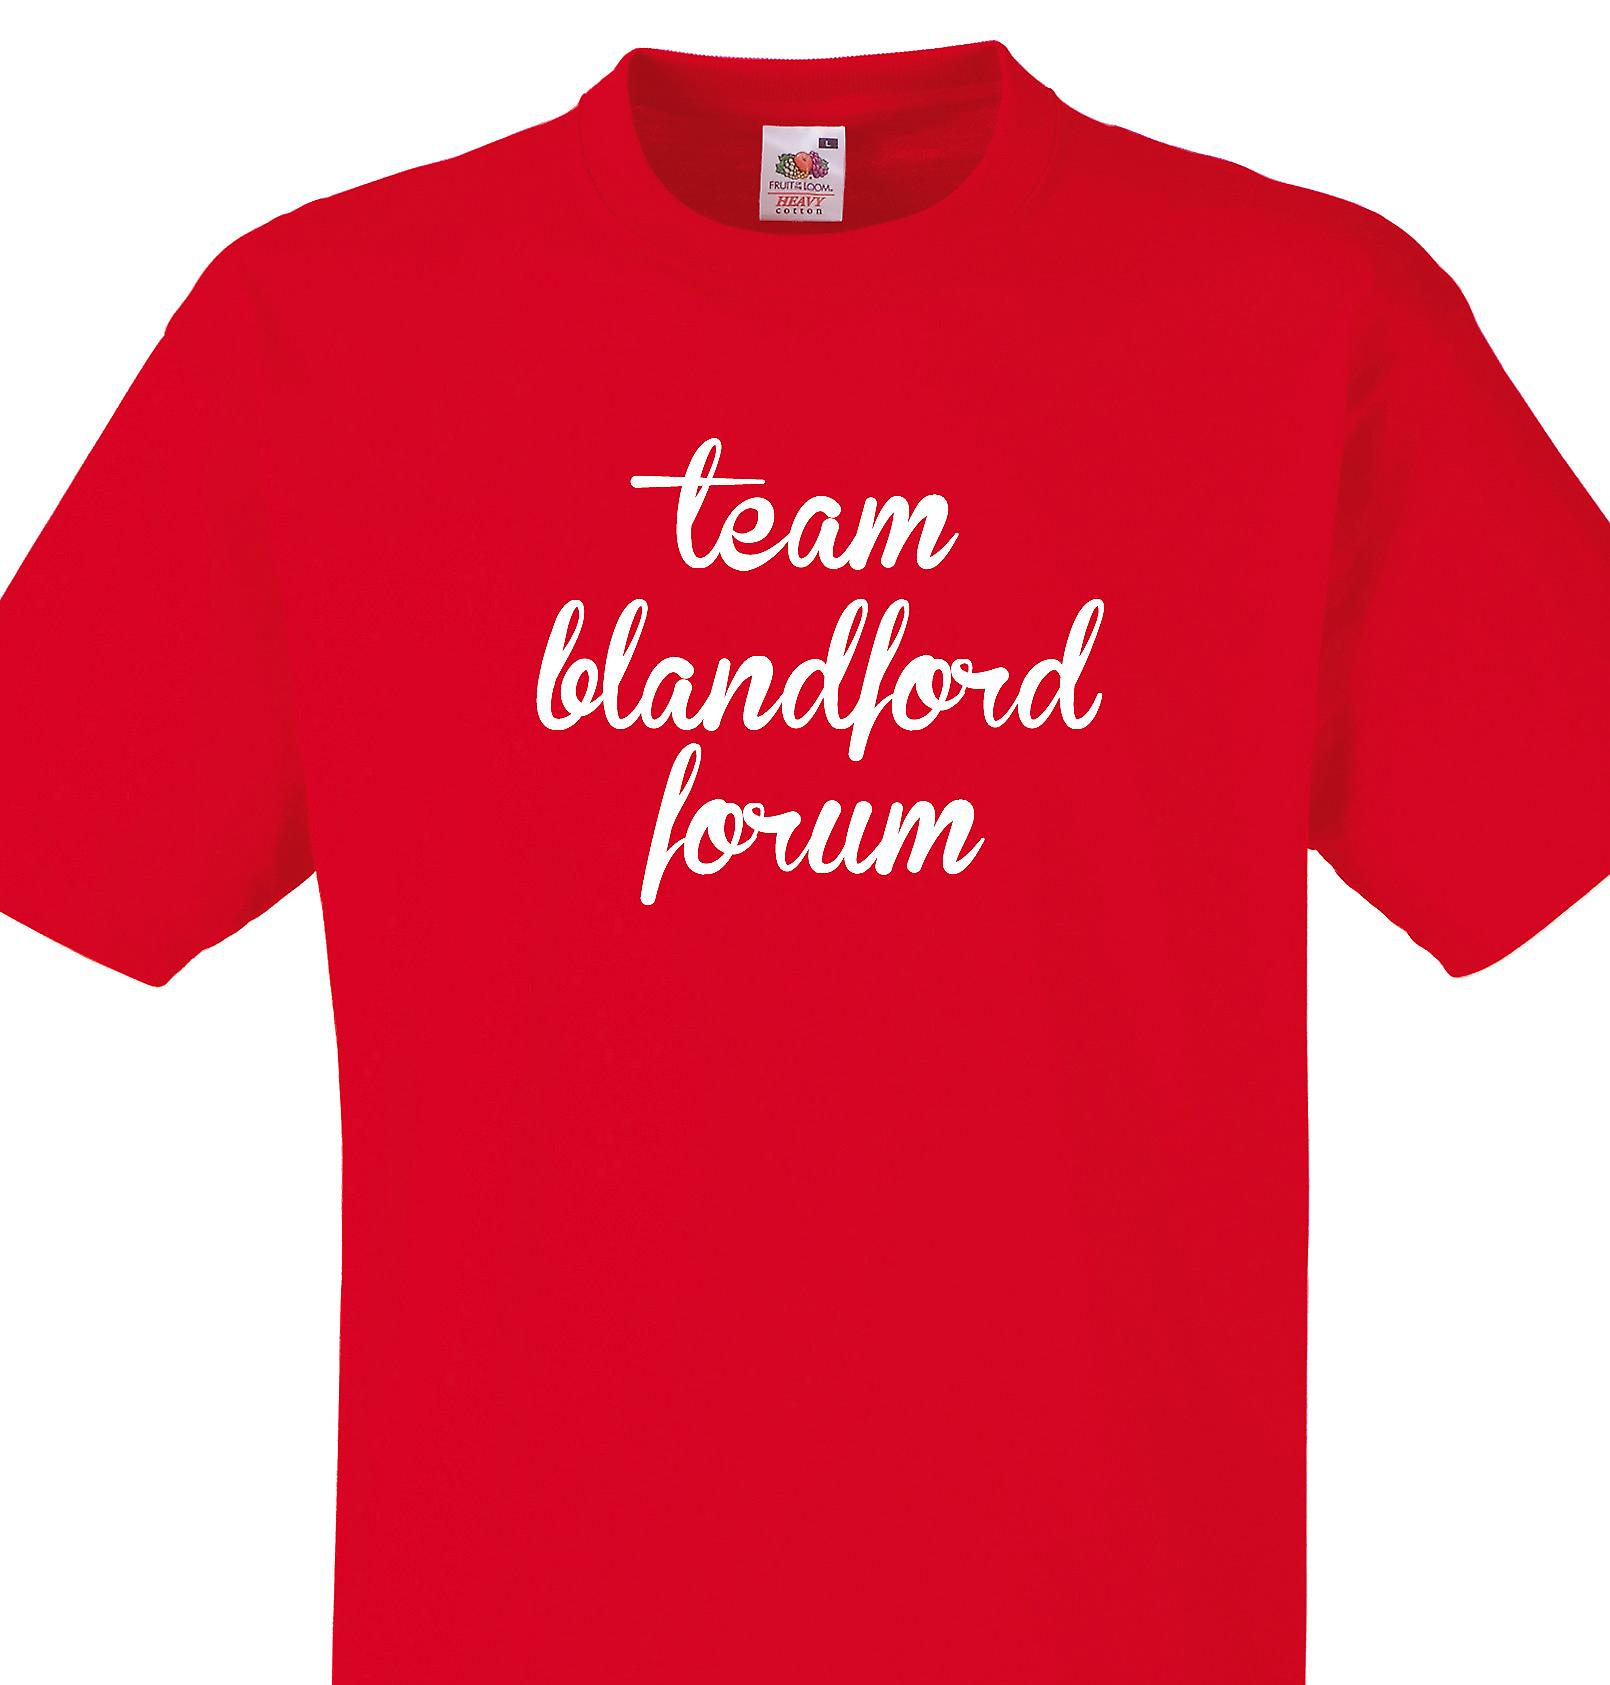 Team Blandford forum Red T shirt